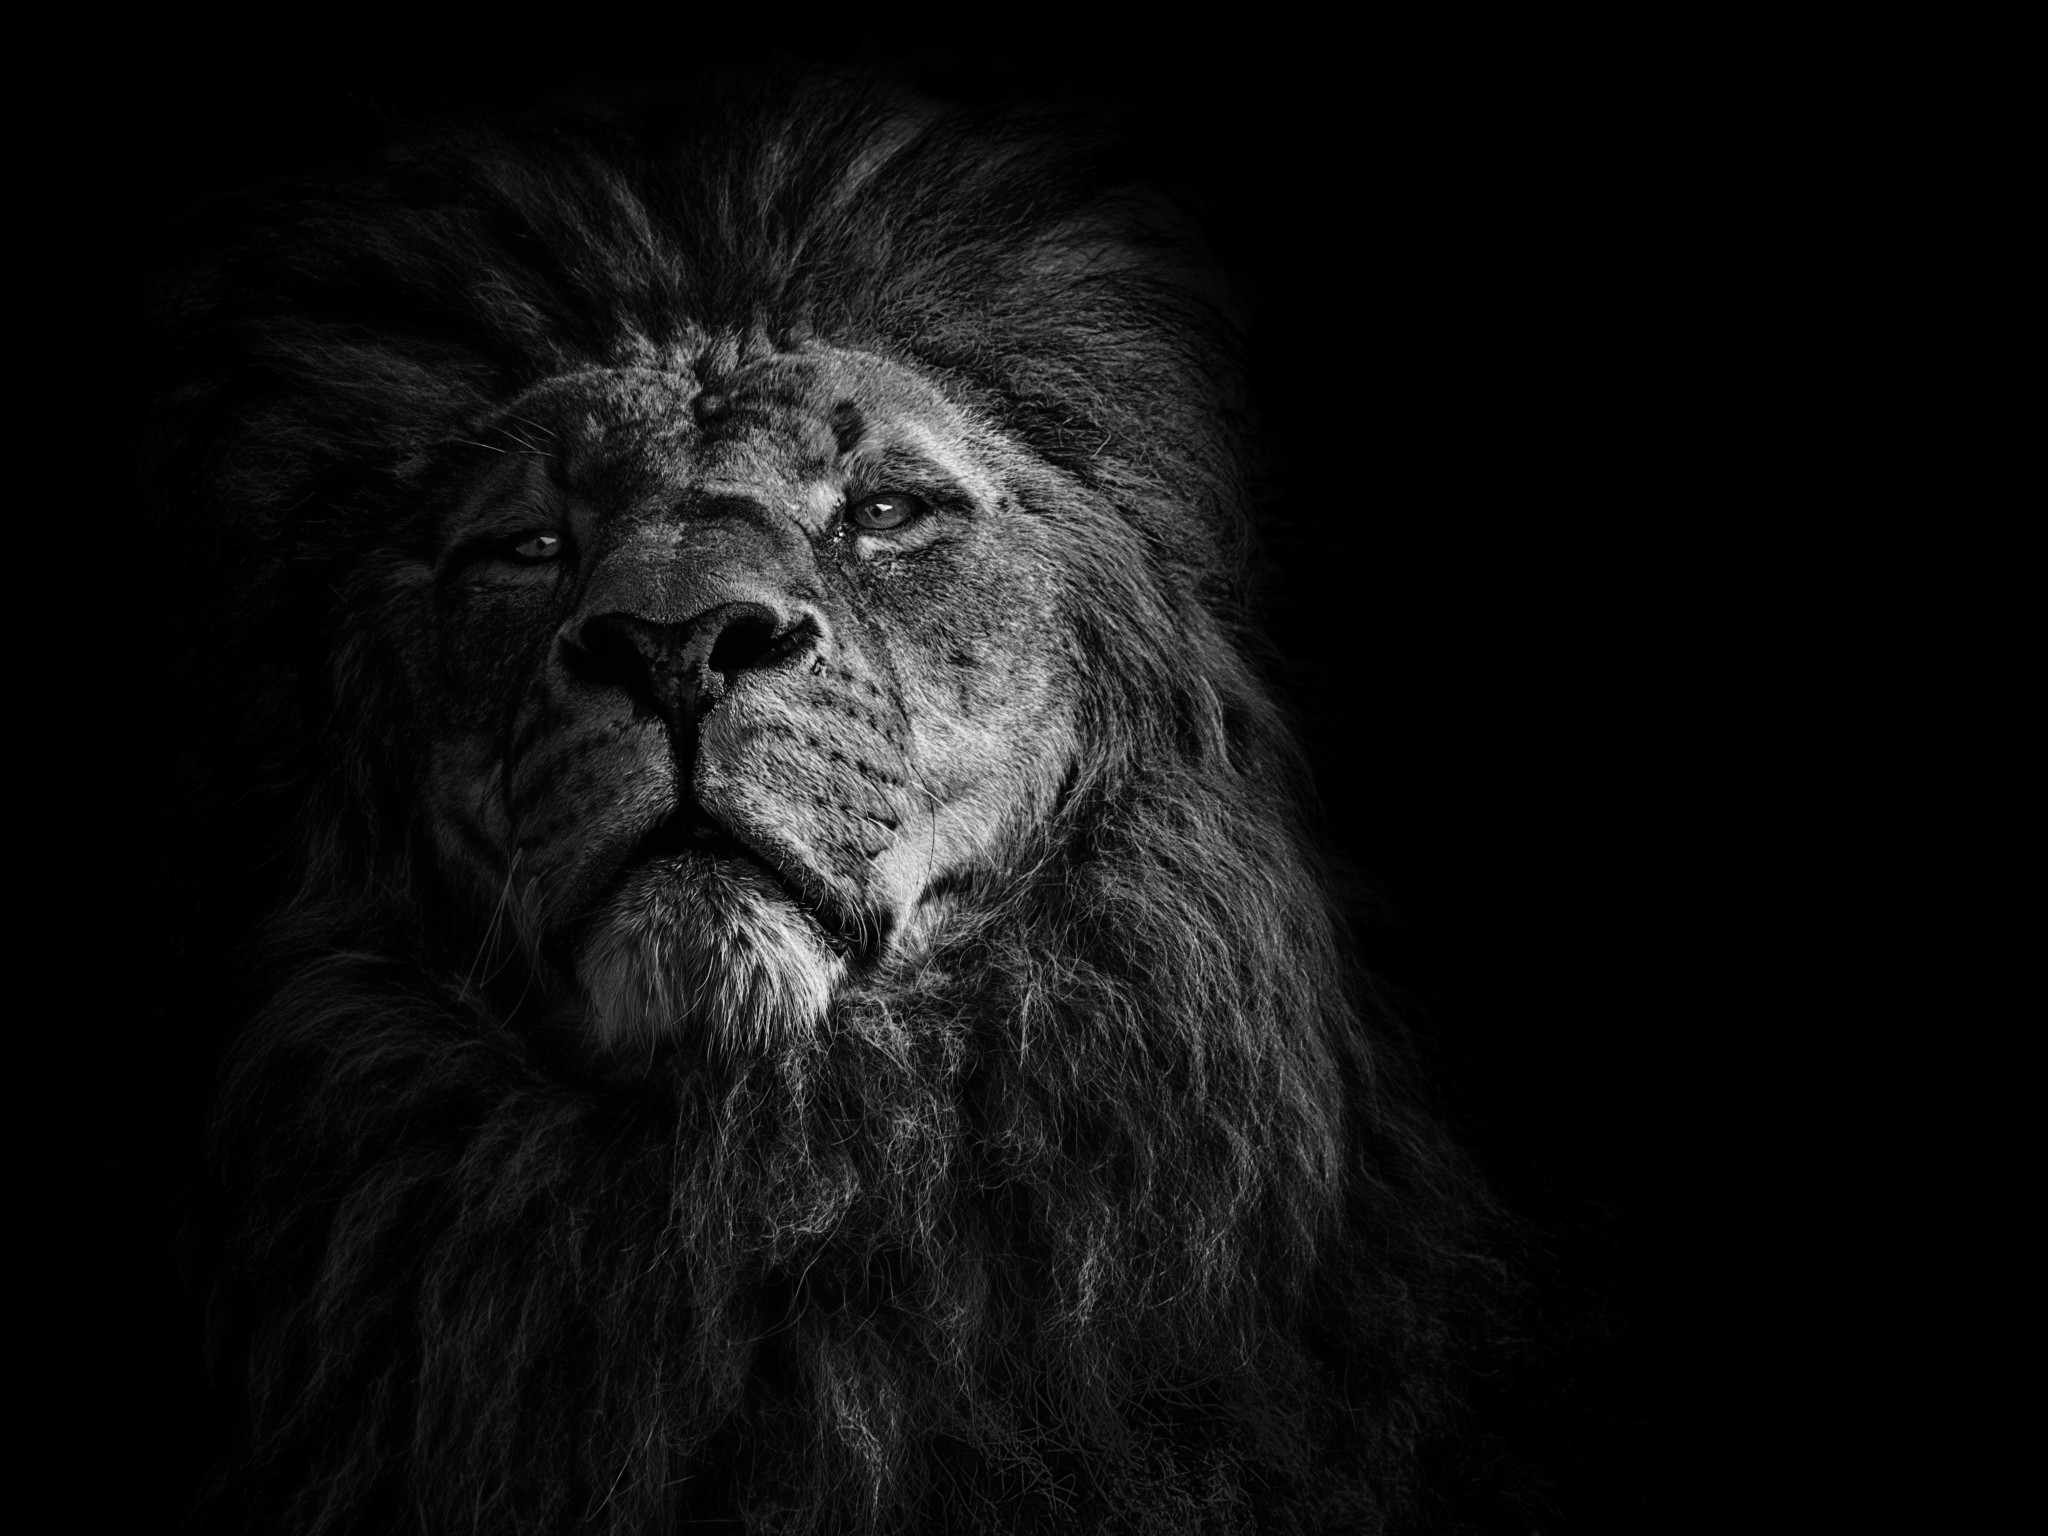 8k Animal Wallpaper Download: CHM-Photography